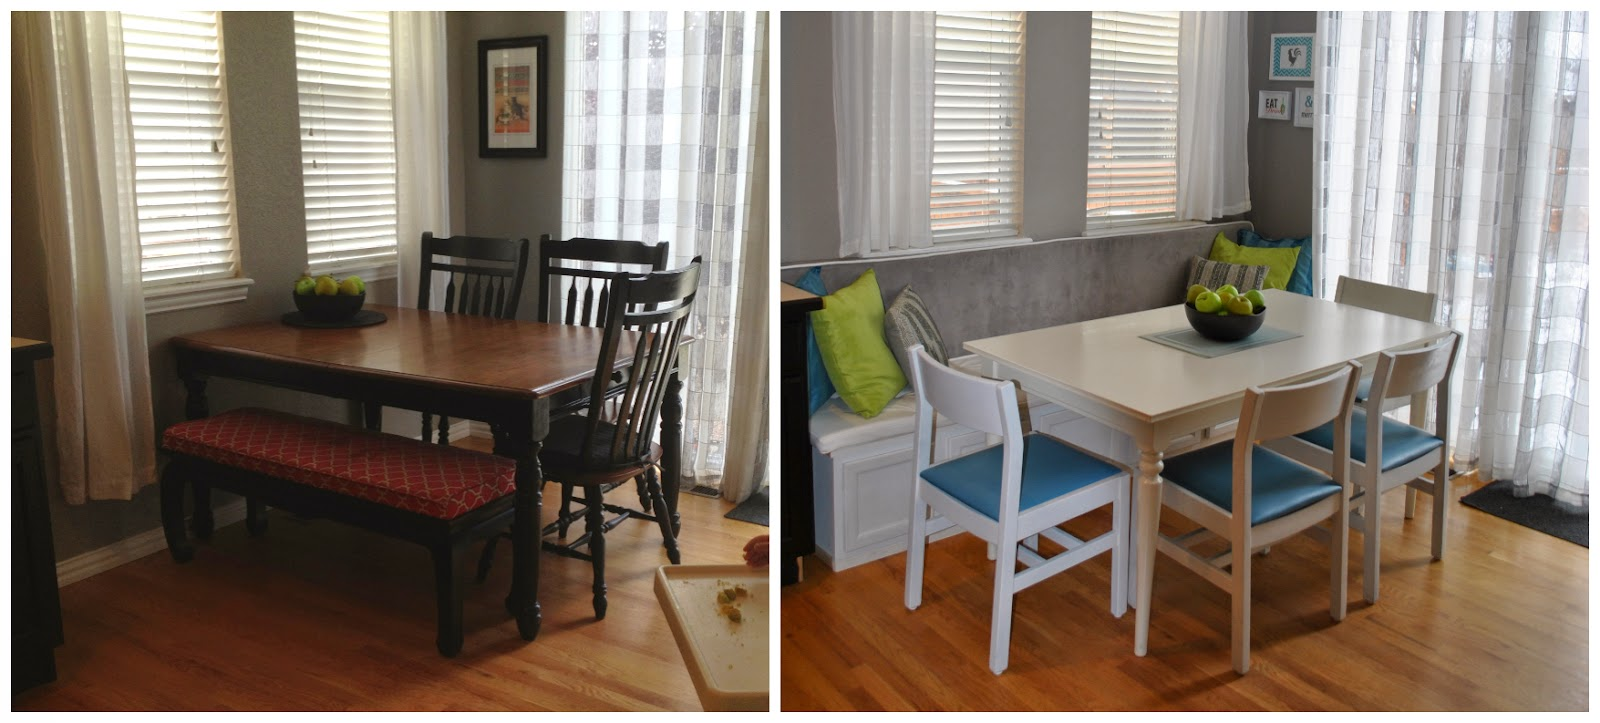 Our Little Bubble: DIY Banquette aka The Breakfast Nook